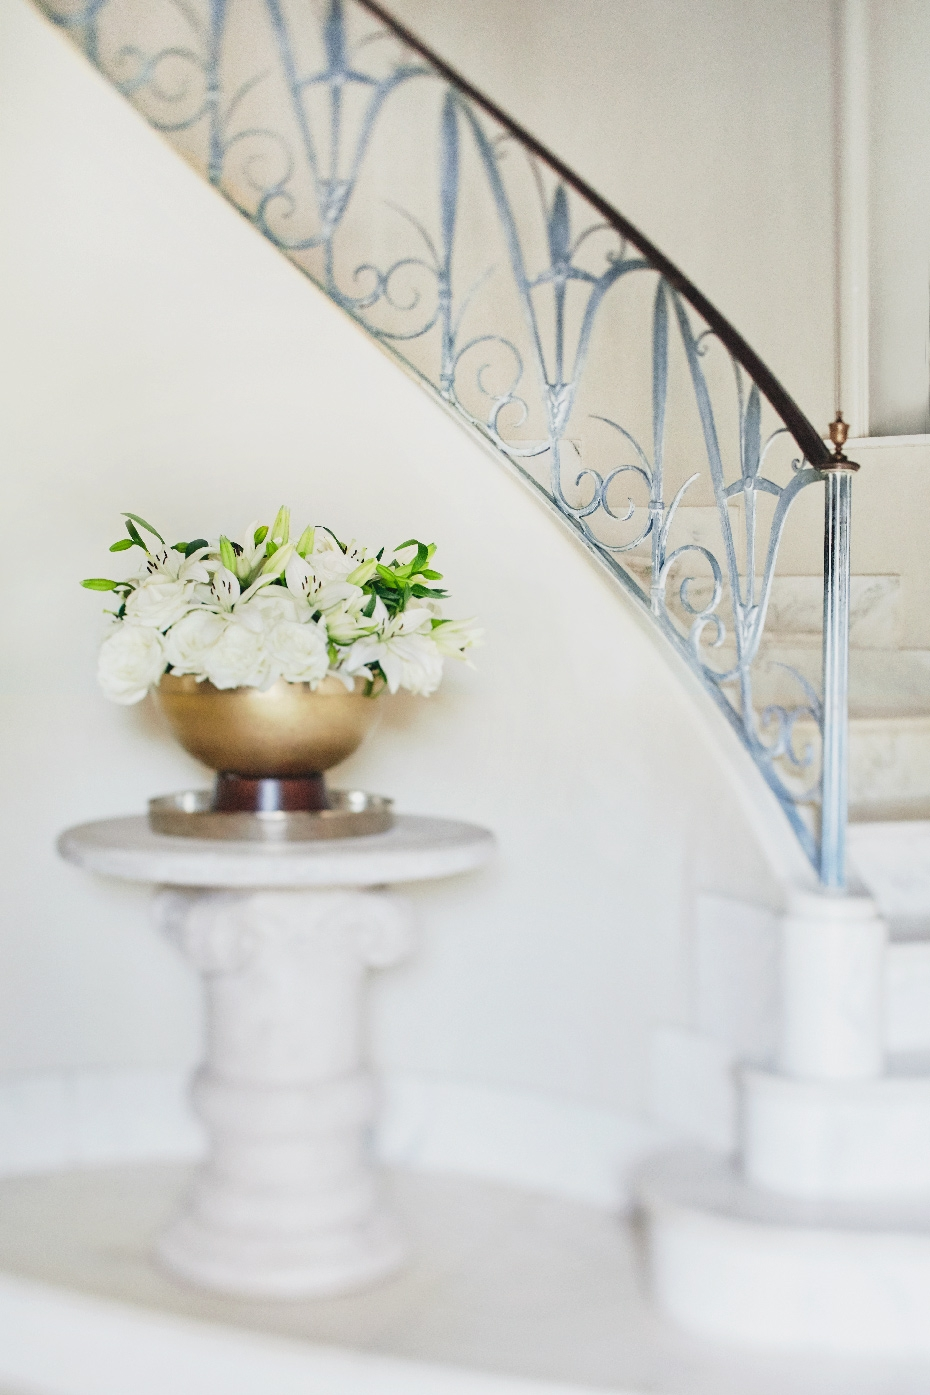 Stacey Van Berkel Photography I Elegant spiral staircase with flower arrangement I Bernhardt Furniture